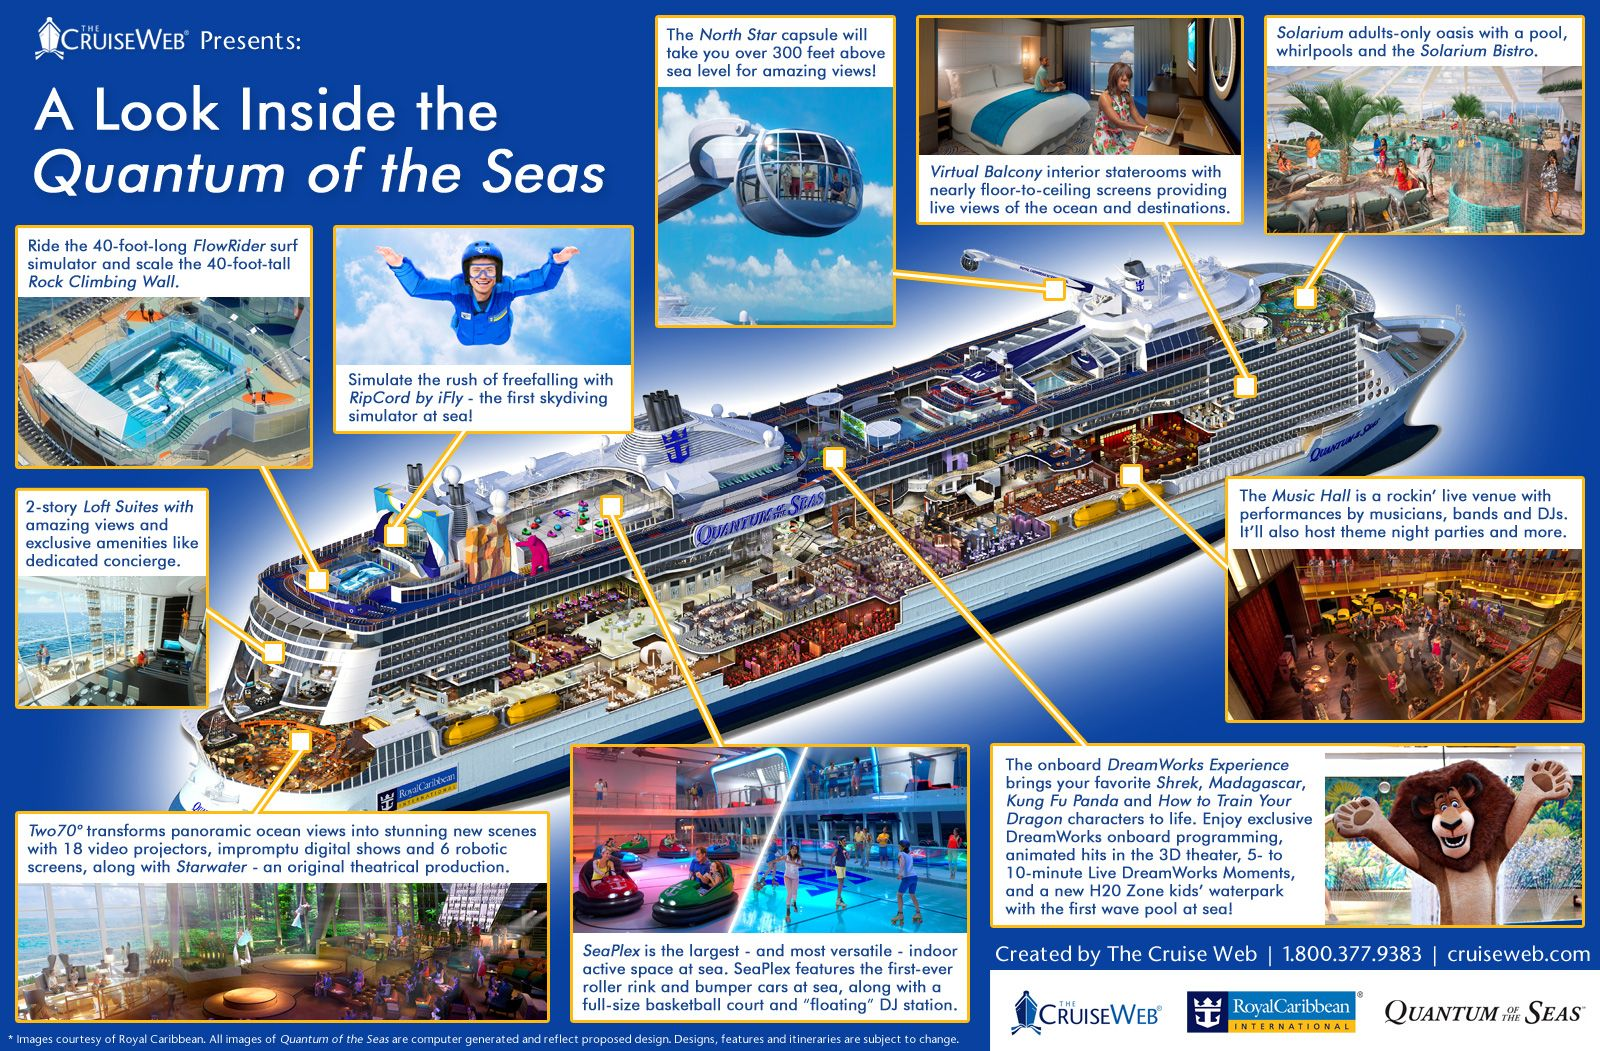 A Look Inside The Quantum Of The Seas An Infographic Royal Caribbean Princess Cruises Tours